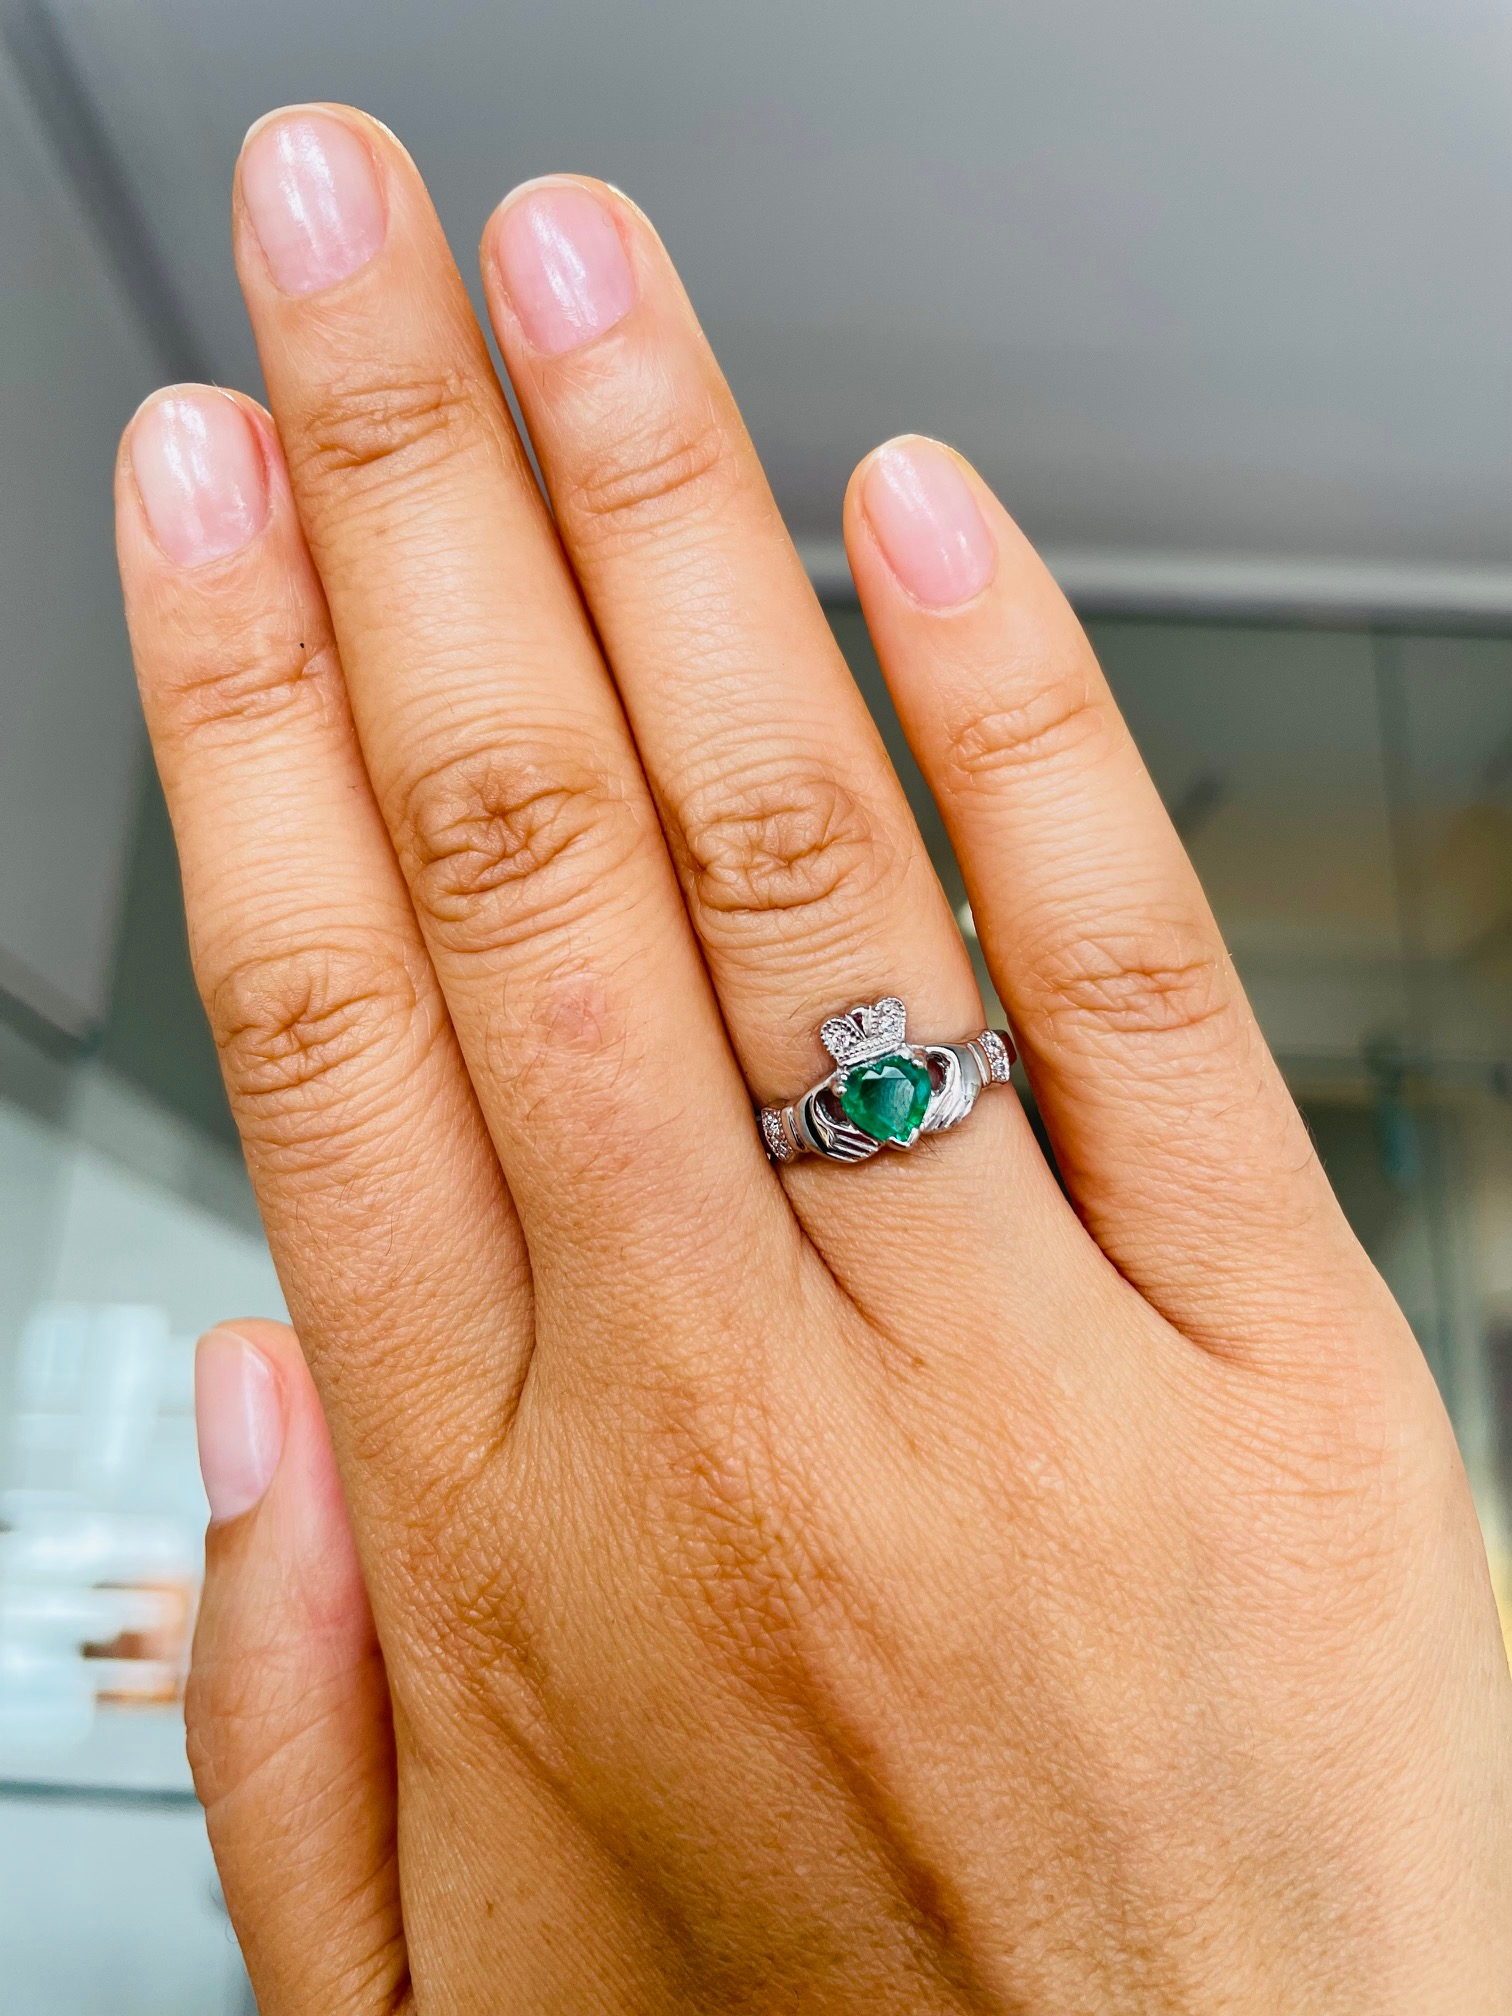 White Gold Claddagh Ring With Emerald